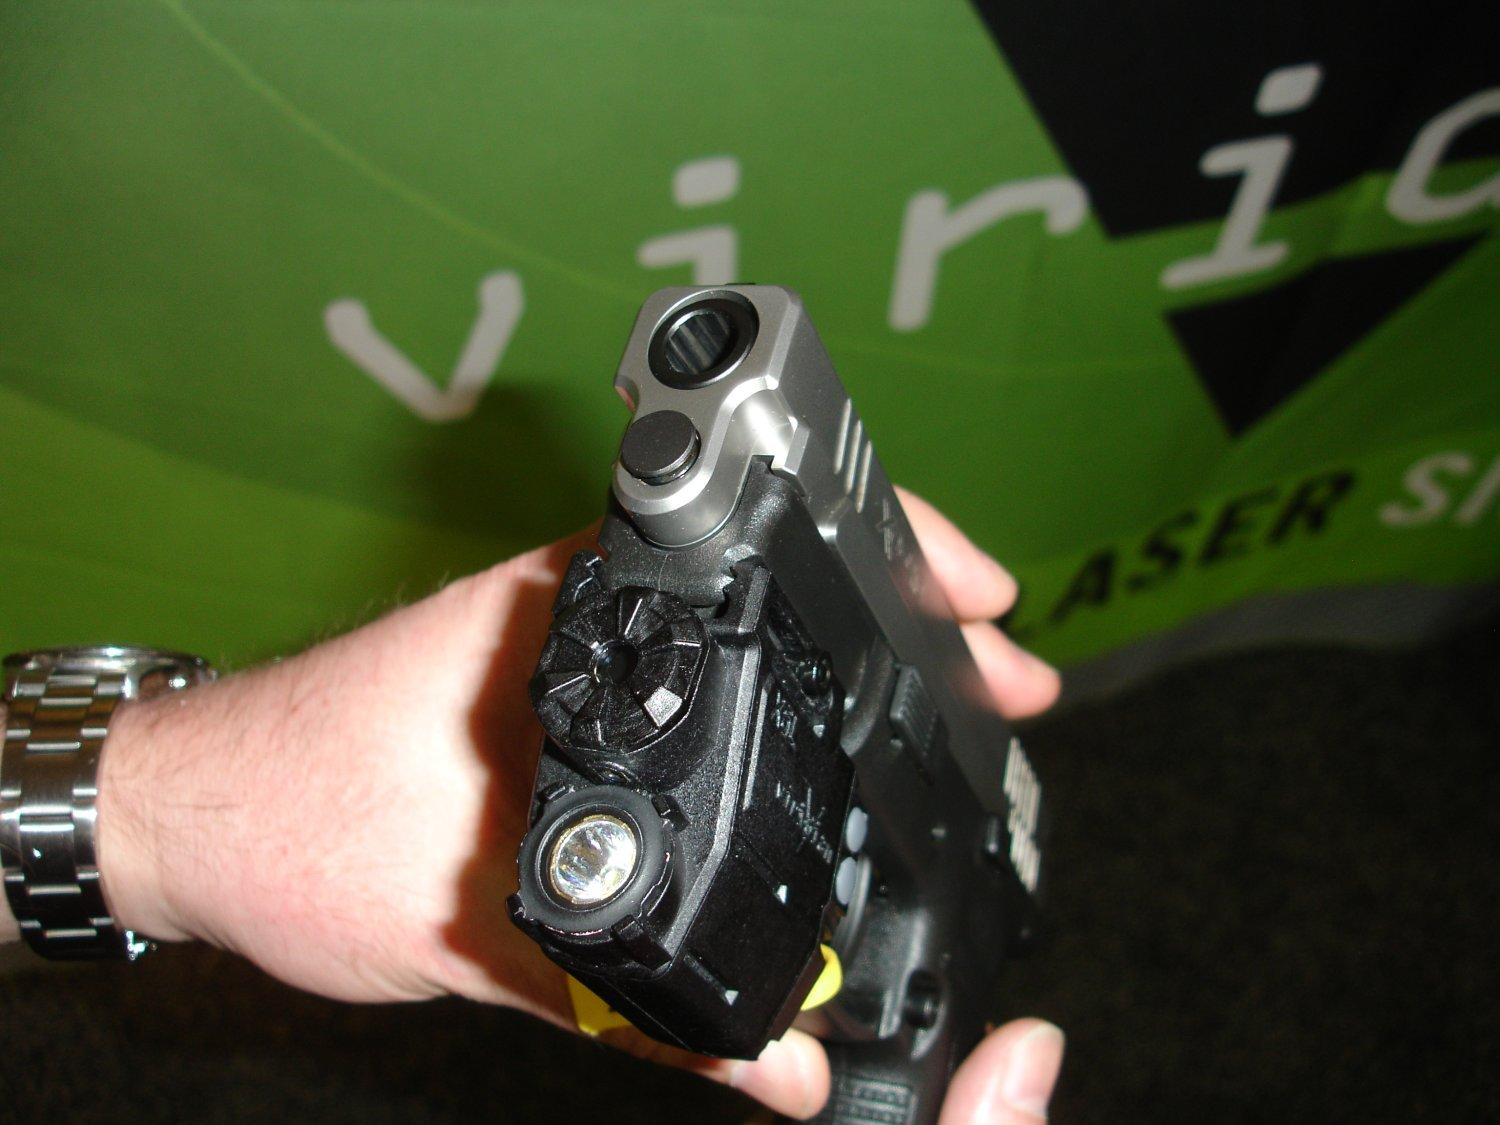 ViridianGreenLaserSights ShotShow2008 3 <!  :en  >Viridian Green Laser Sights for Tactical Weapons: Green Beats Red<!  :  >